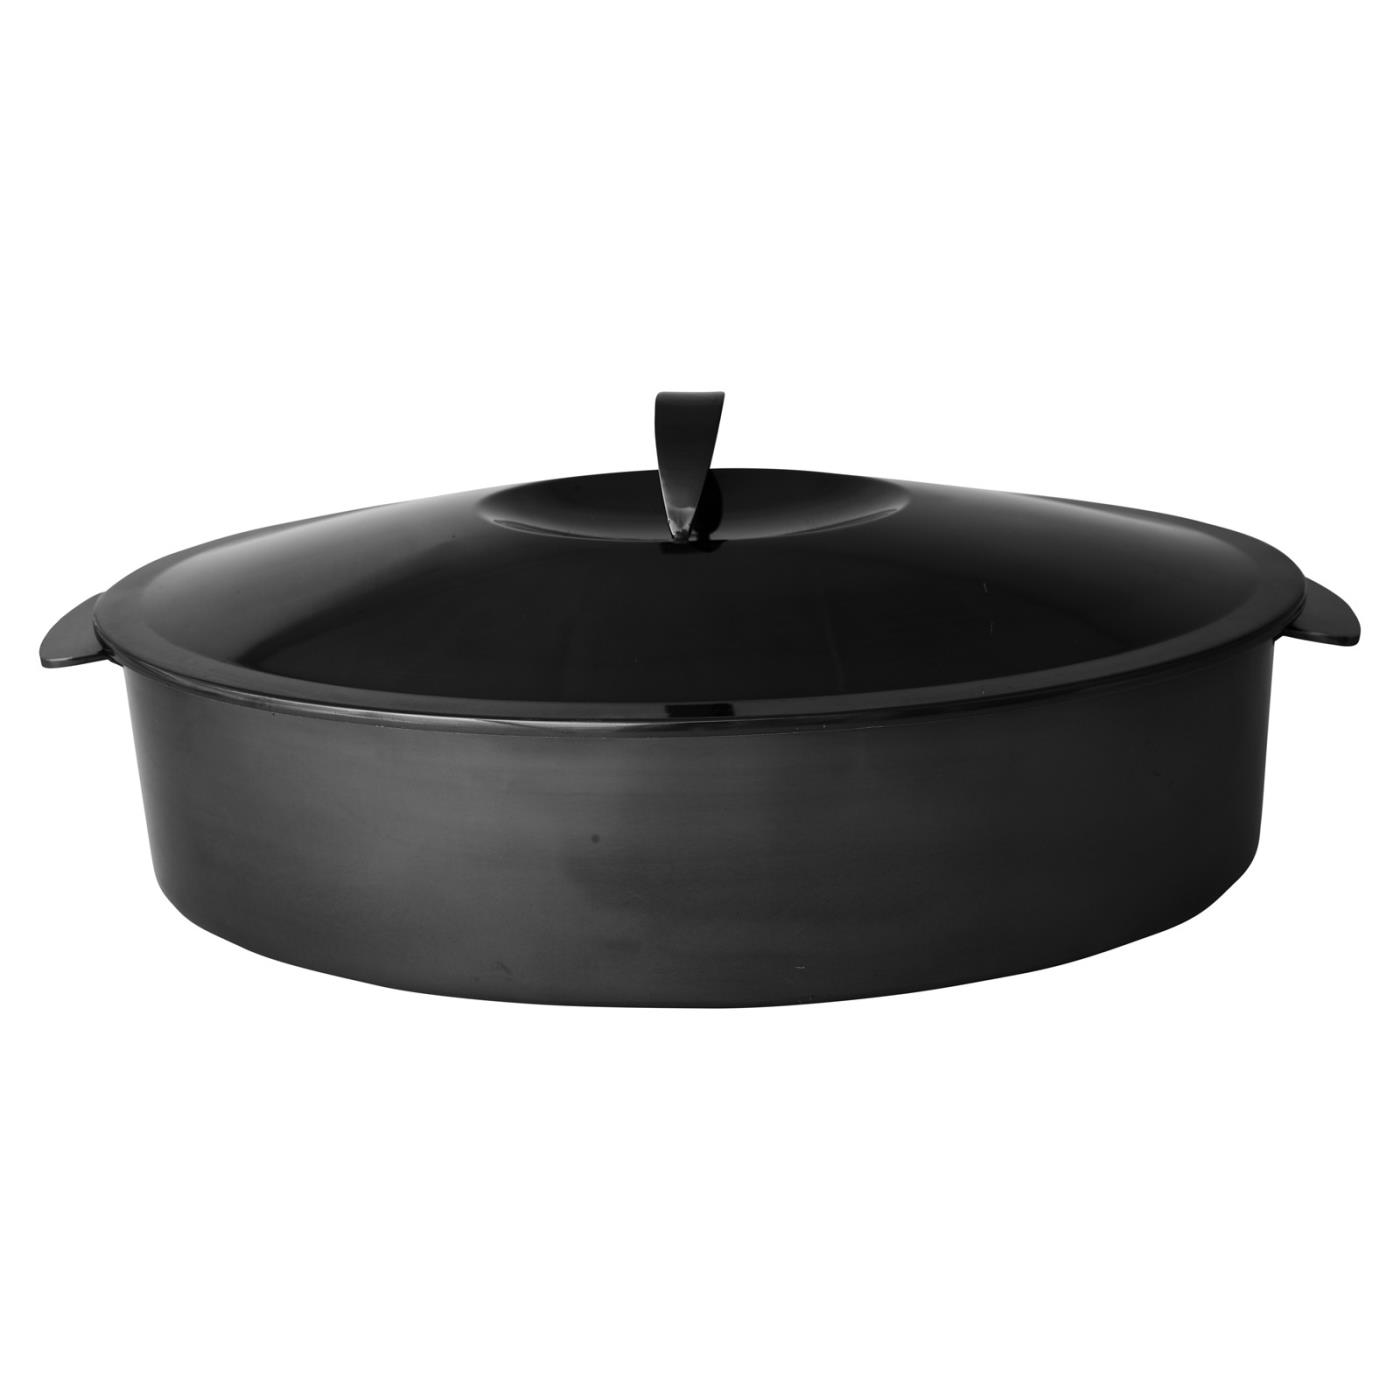 Titanium Oval Dutch Oven